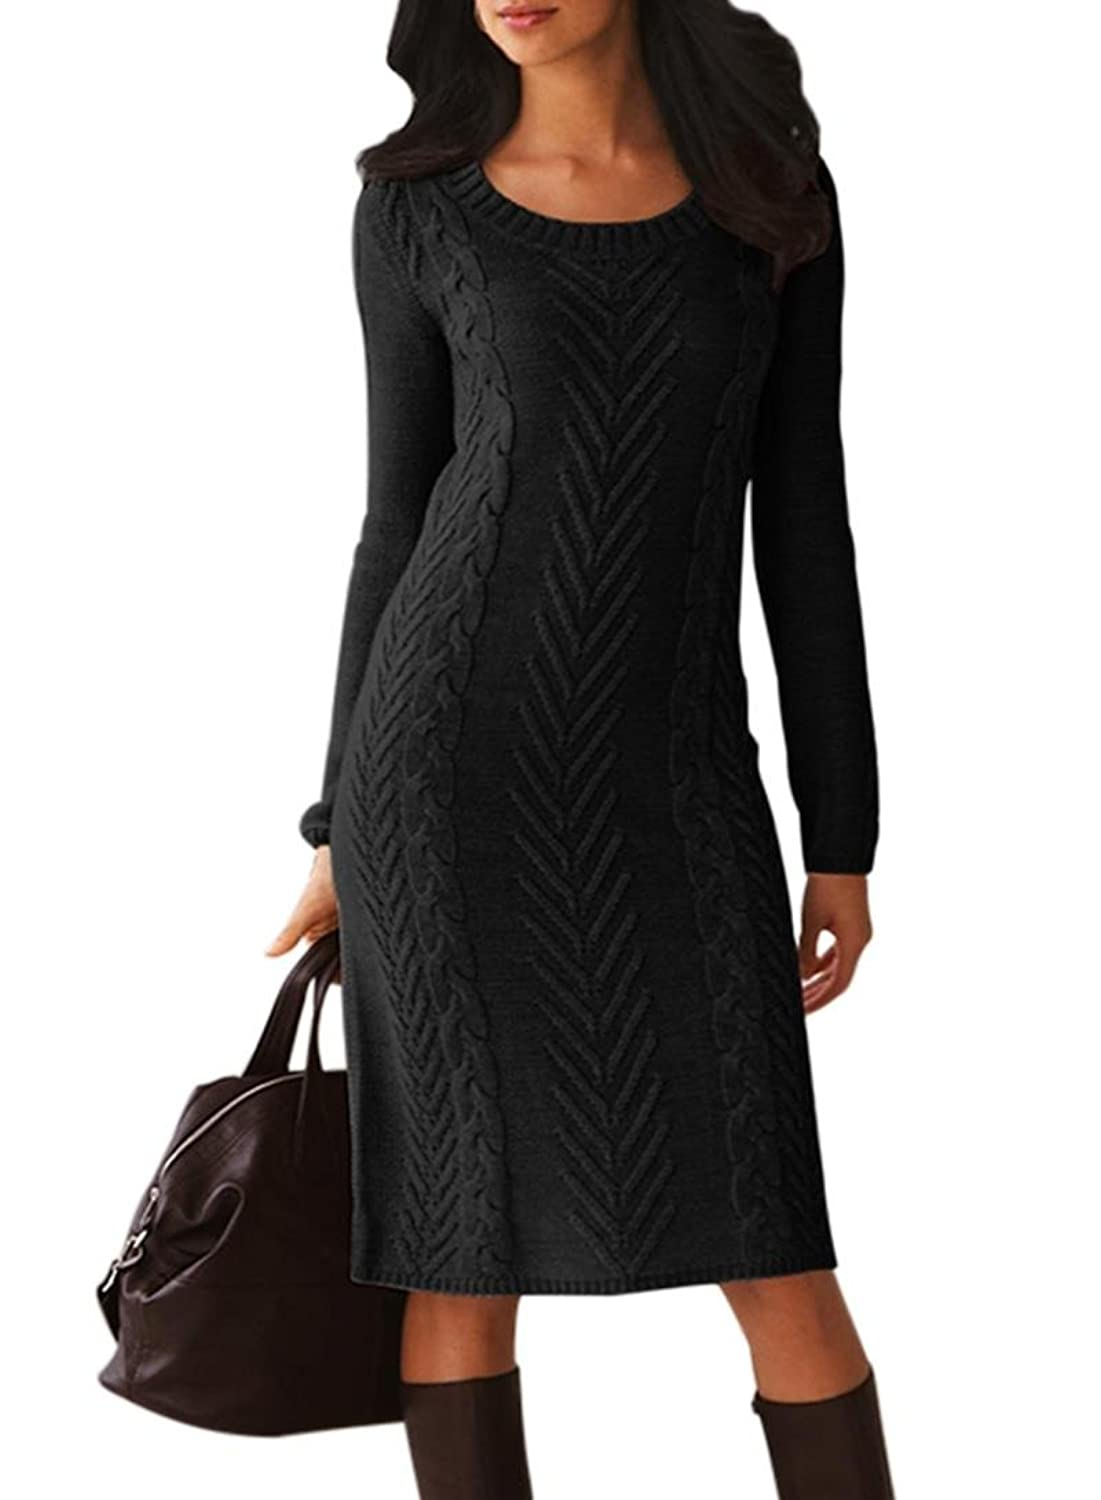 1960s – 70s Dresses- Retro Inspired Fashion Dearlove Womens Long Sleeve Crew Neck Slim Knit Sweater Bodycon Midi Dress $27.99 AT vintagedancer.com